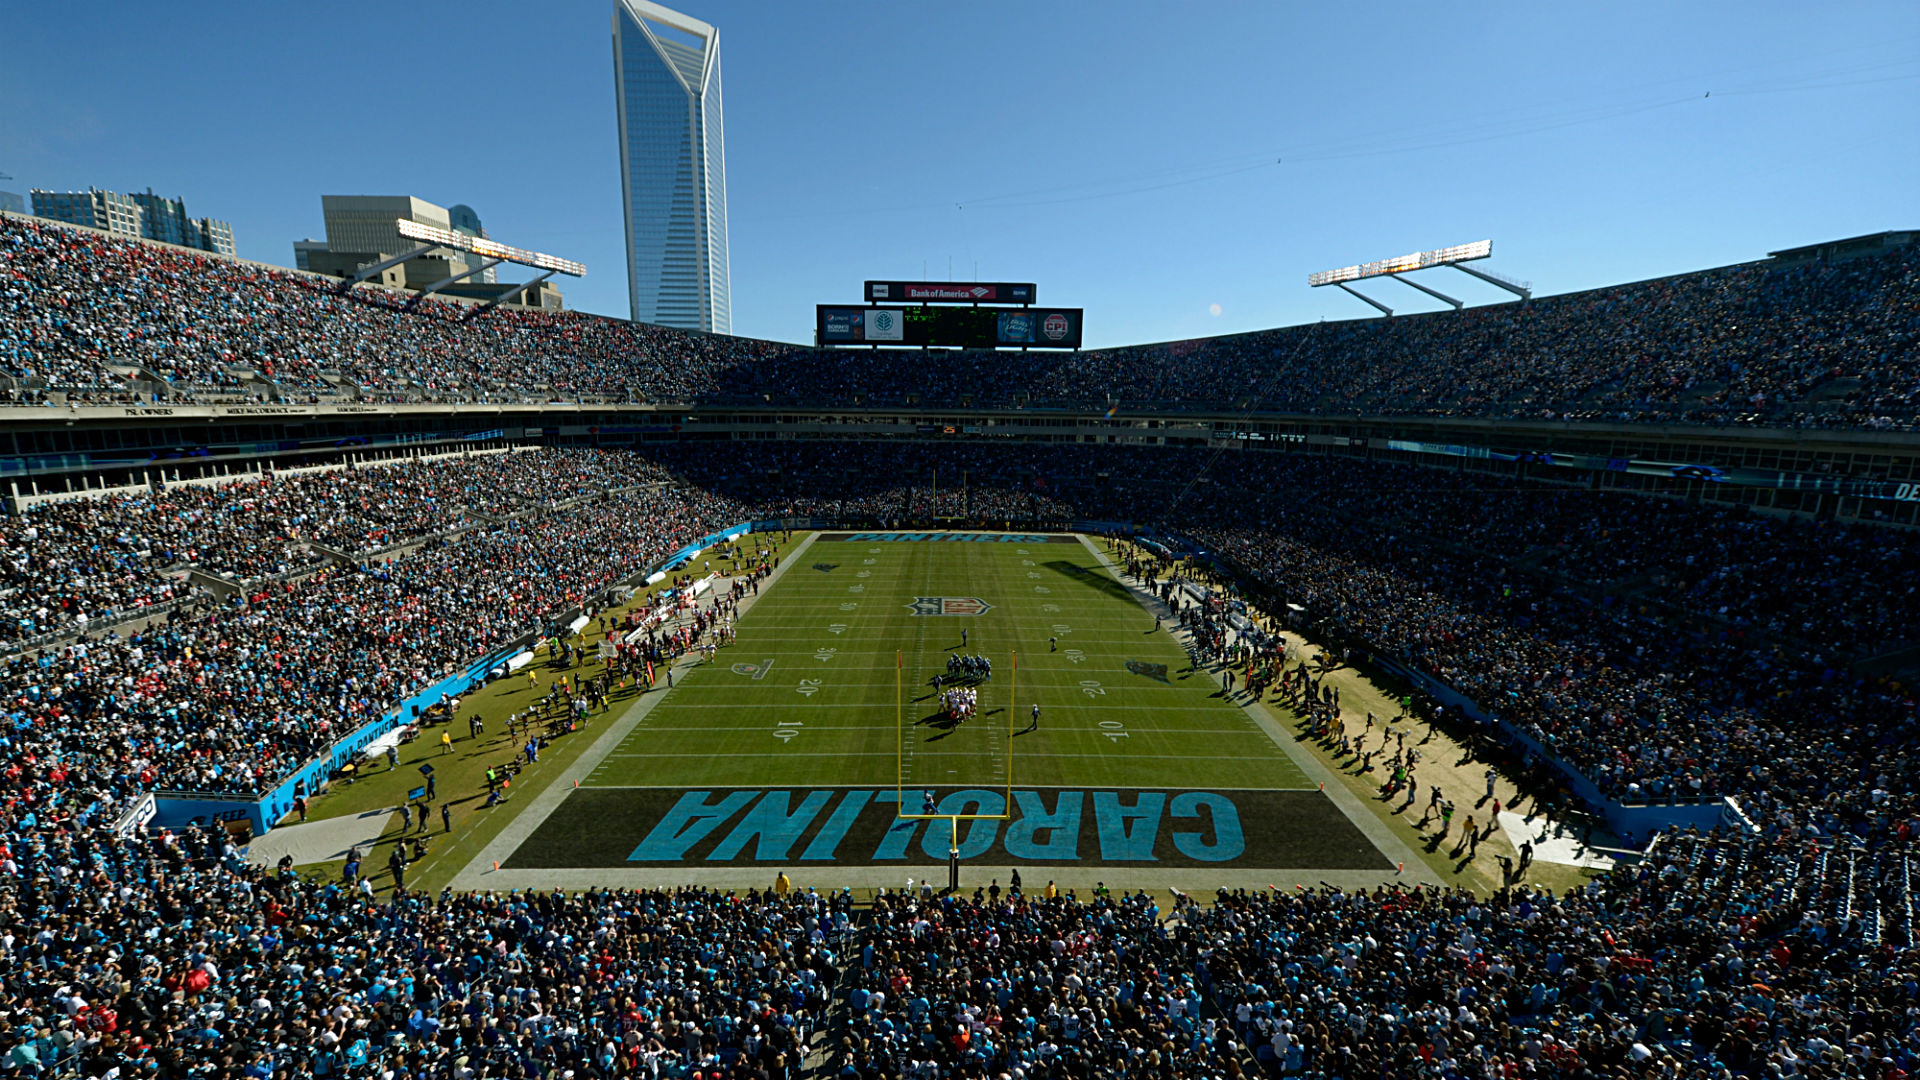 Bank-of-america-stadium-071615-getty-ftrjpg_gj3lb49797e41uue322xxfekf